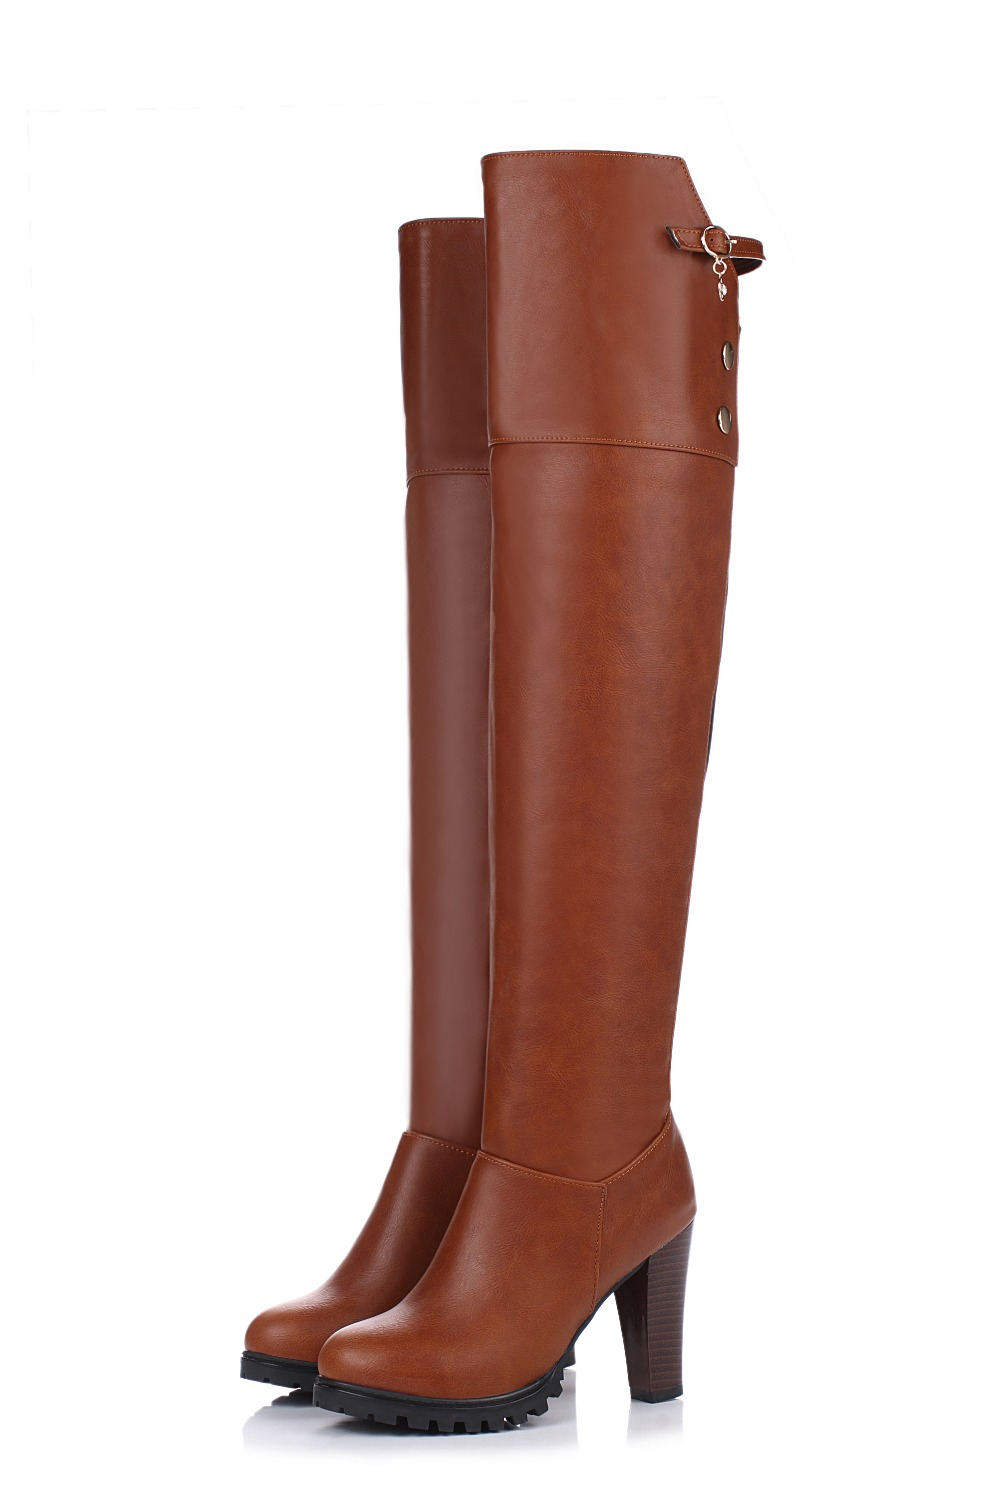 Original Intention Design Women Over-Knee Boots Round Toe Spike Heels Winter Boots Elegant Brown Red Shoes Woman Plus Size 3-13